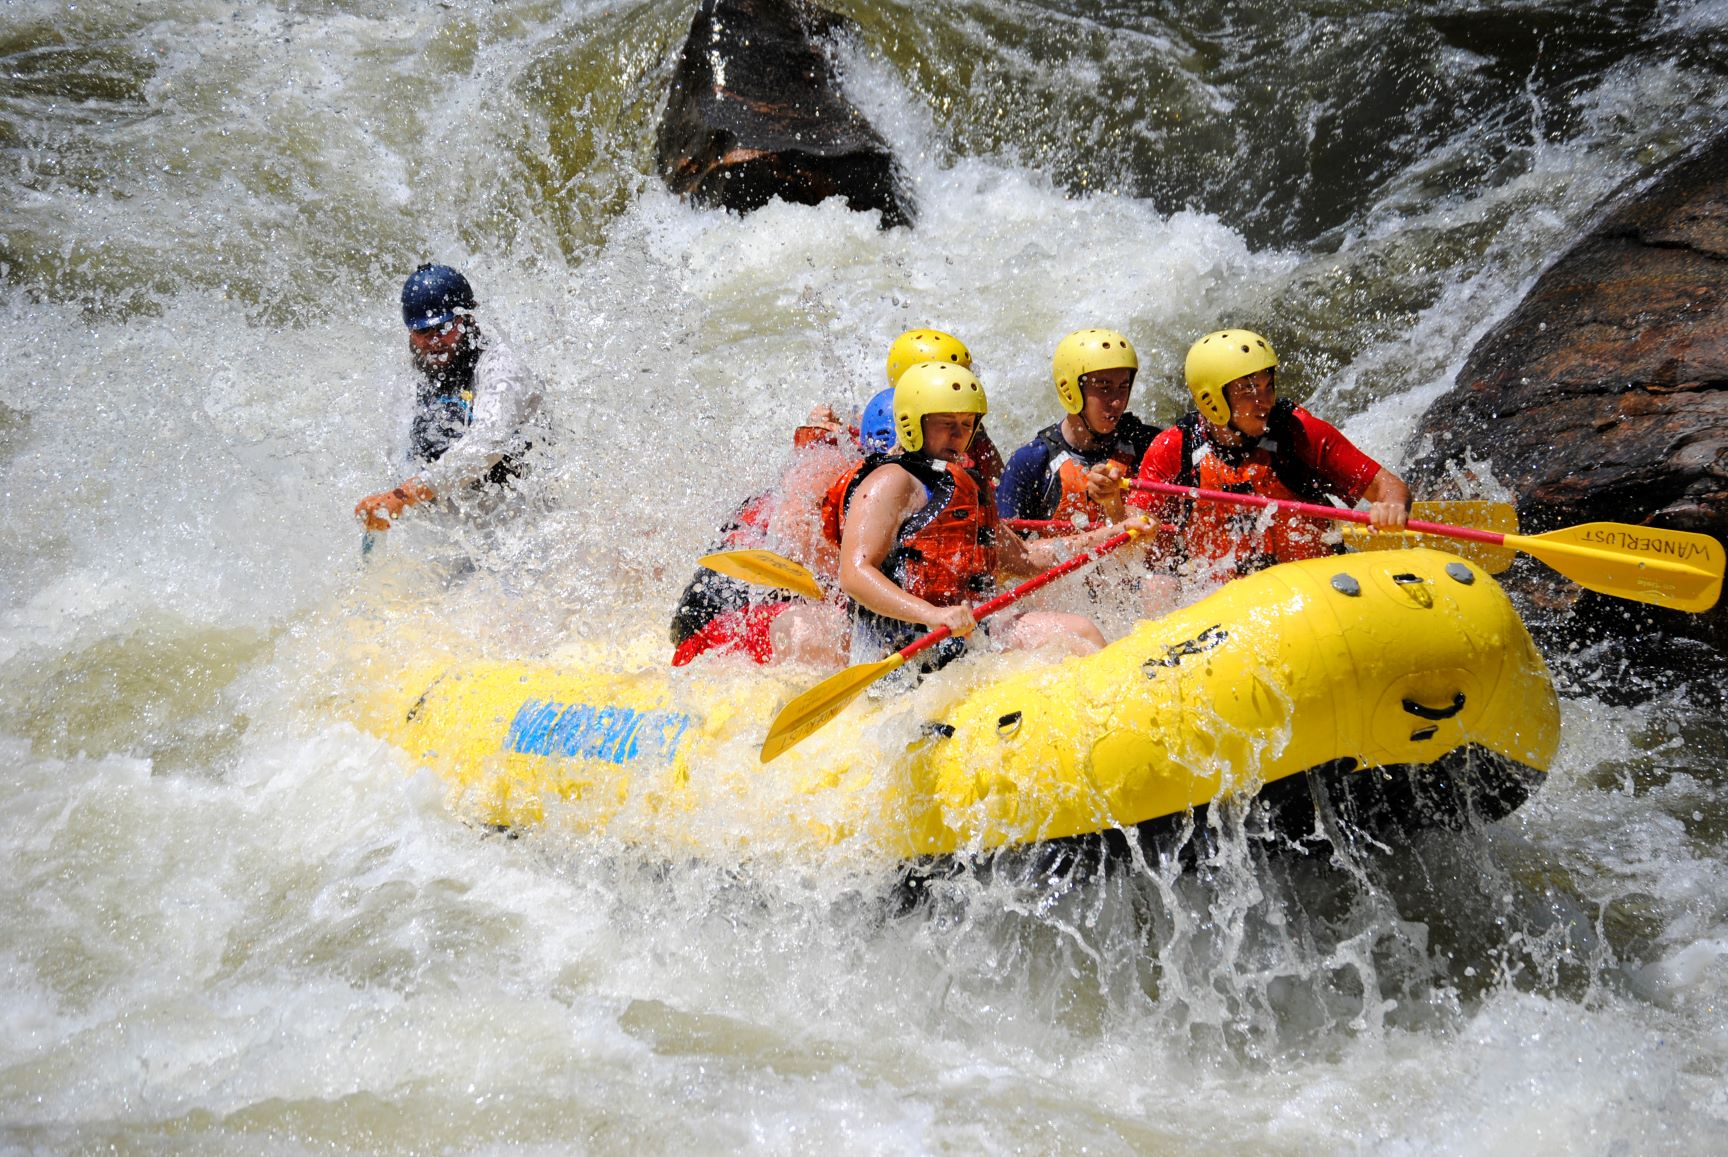 White Water Rafting on the River Tay - Leaving from Edinburgh Scotland